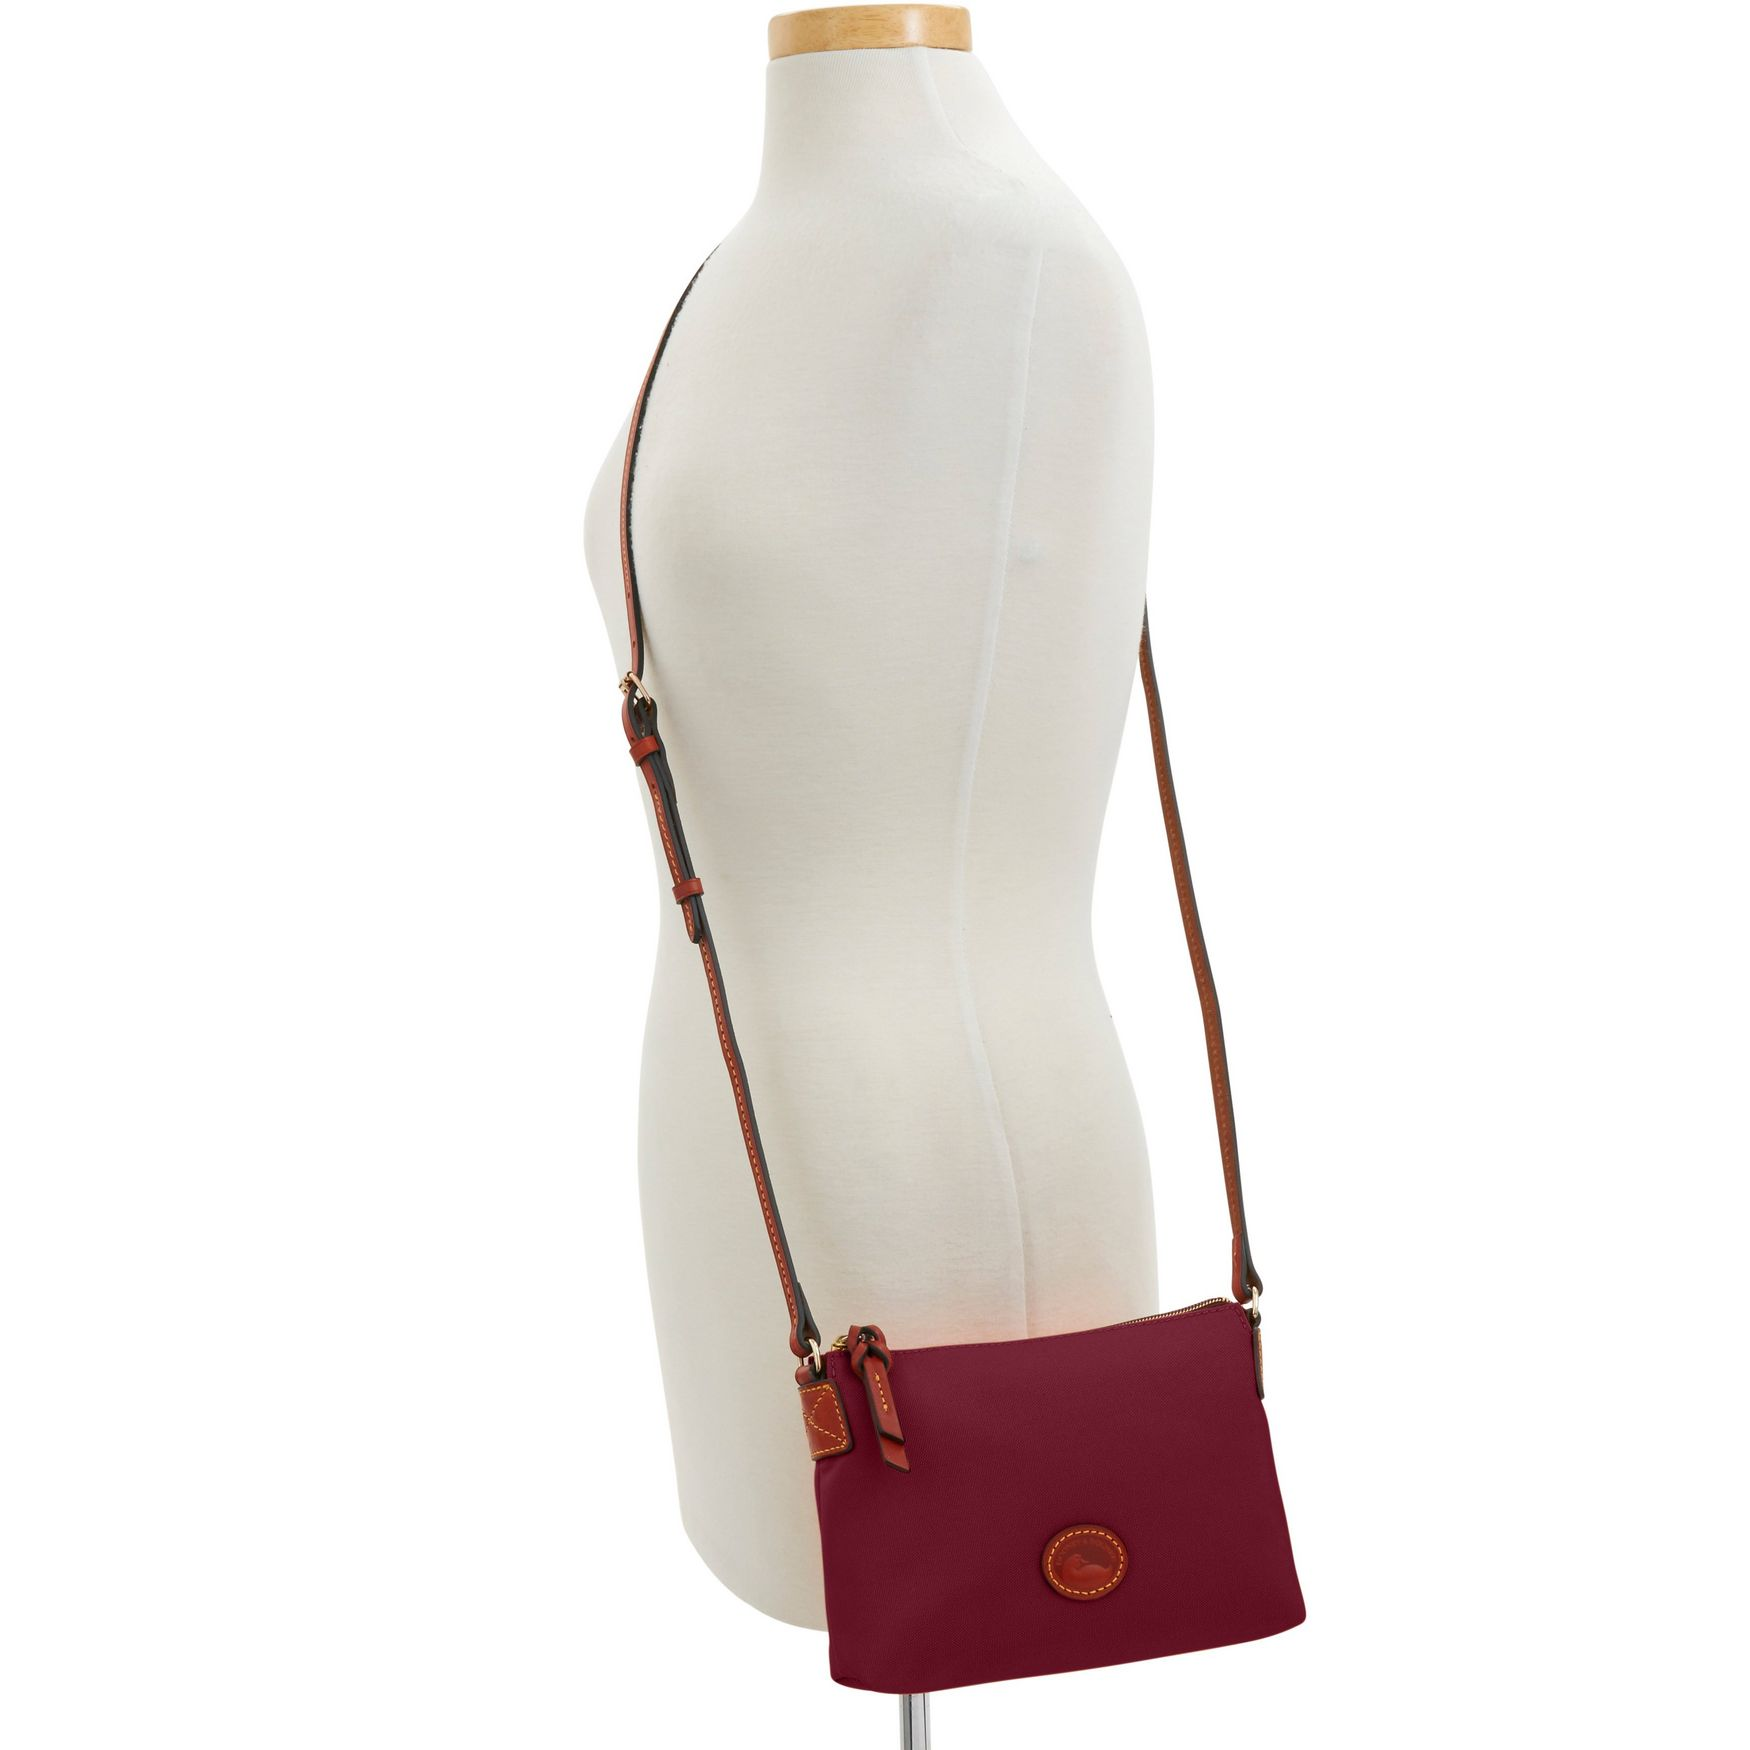 Dooney-amp-Bourke-Nylon-Crossbody-Pouchette-Shoulder-Bag thumbnail 19